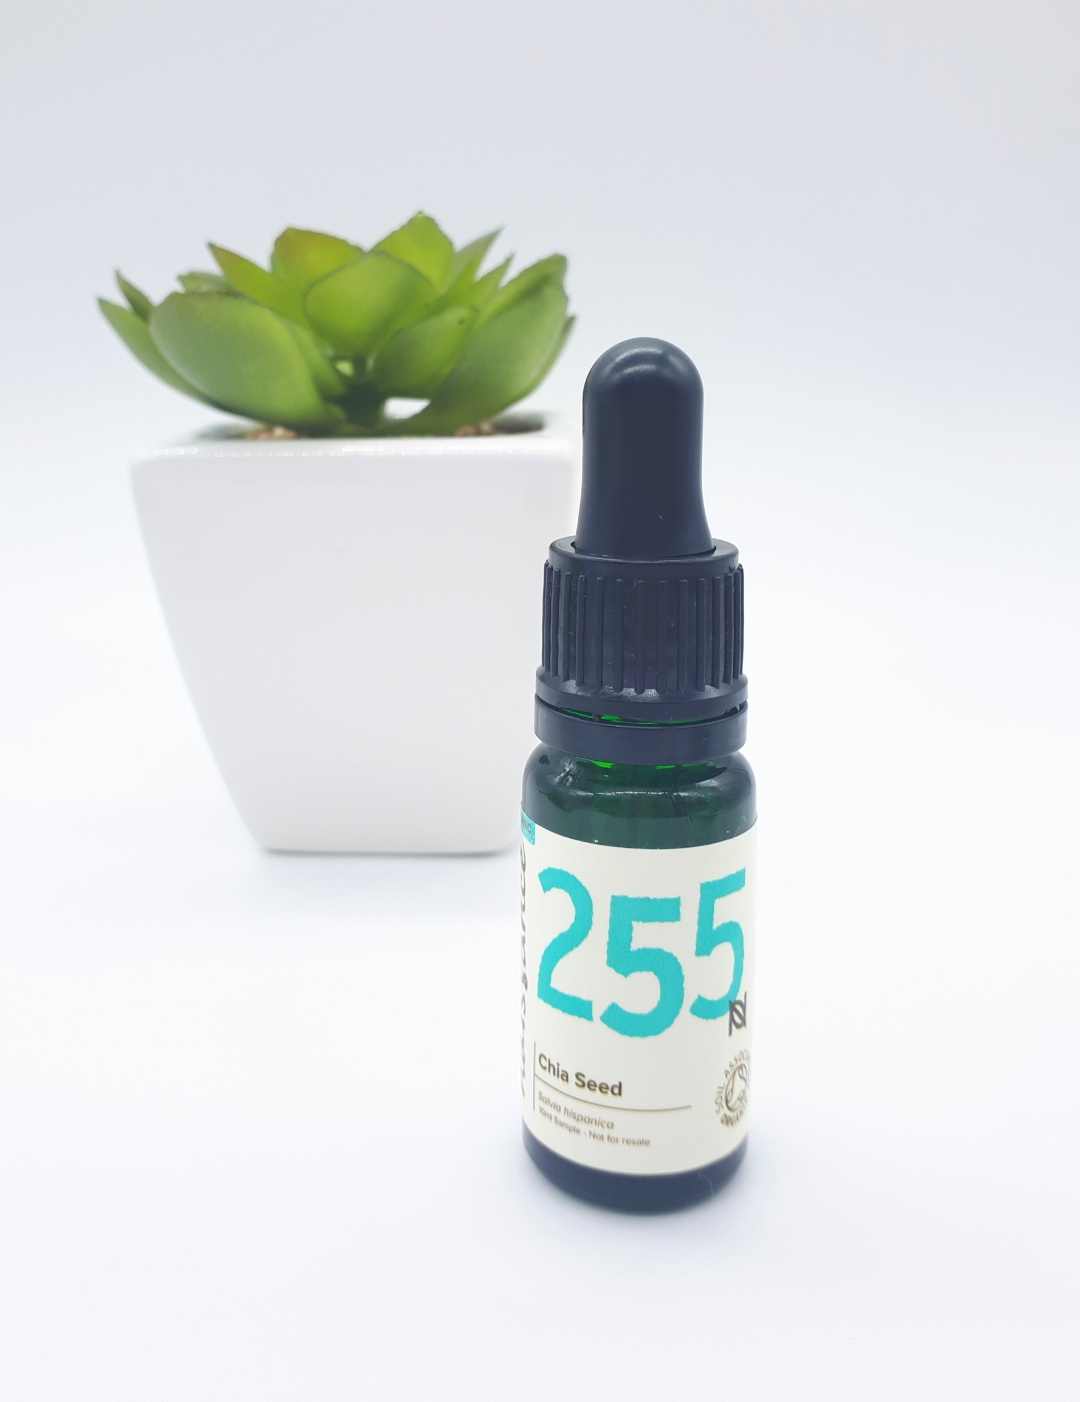 A dark green dropper bottle with a cream label with black and bright blue writing stands on a white backdrop. In the background, slightly to the left, is a bright green succulent plant in a white square pot.